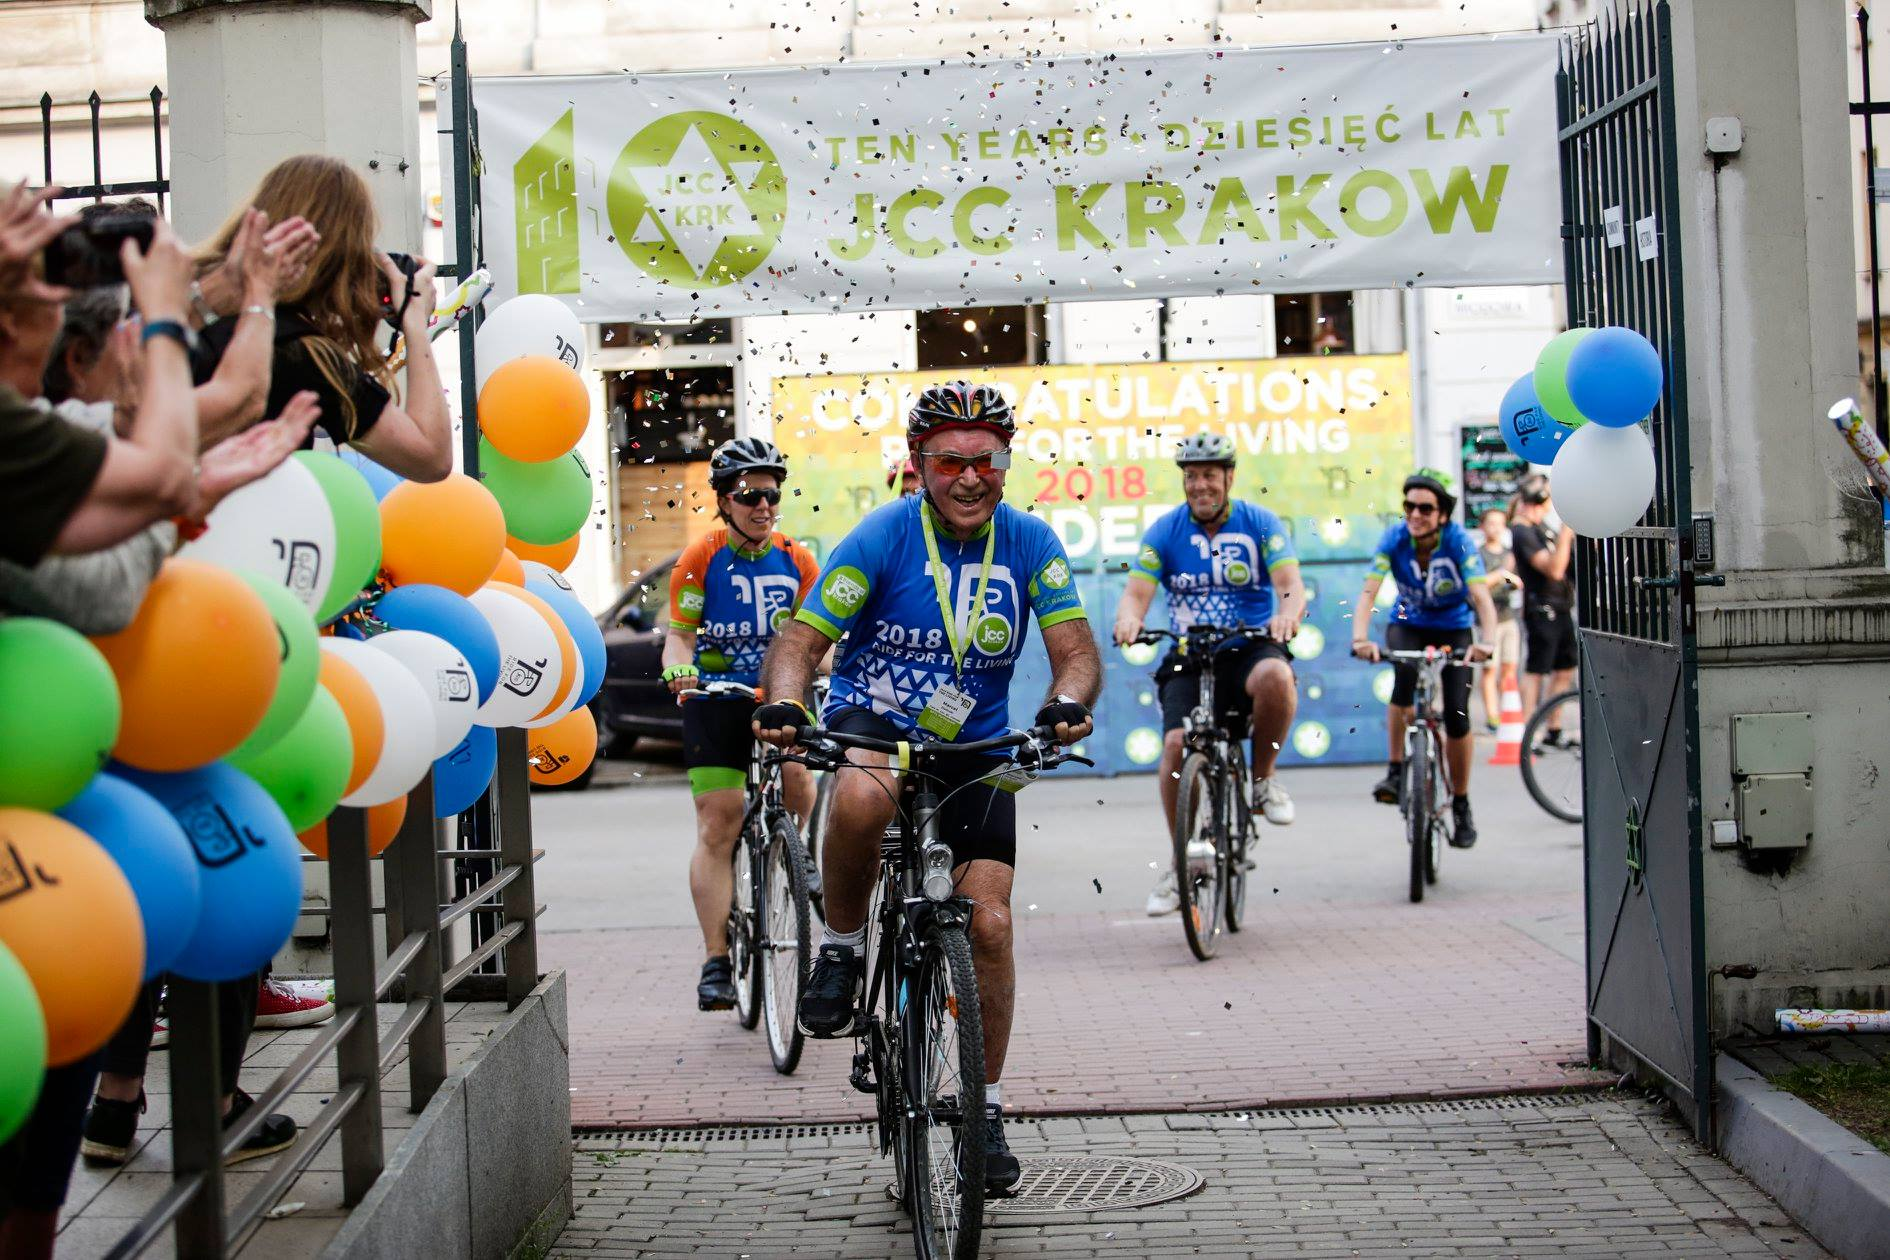 Auschwitz survivor Marcel Zielinski clears the finish line of Ride for the Living 2018 (phot. JCC Krakow)